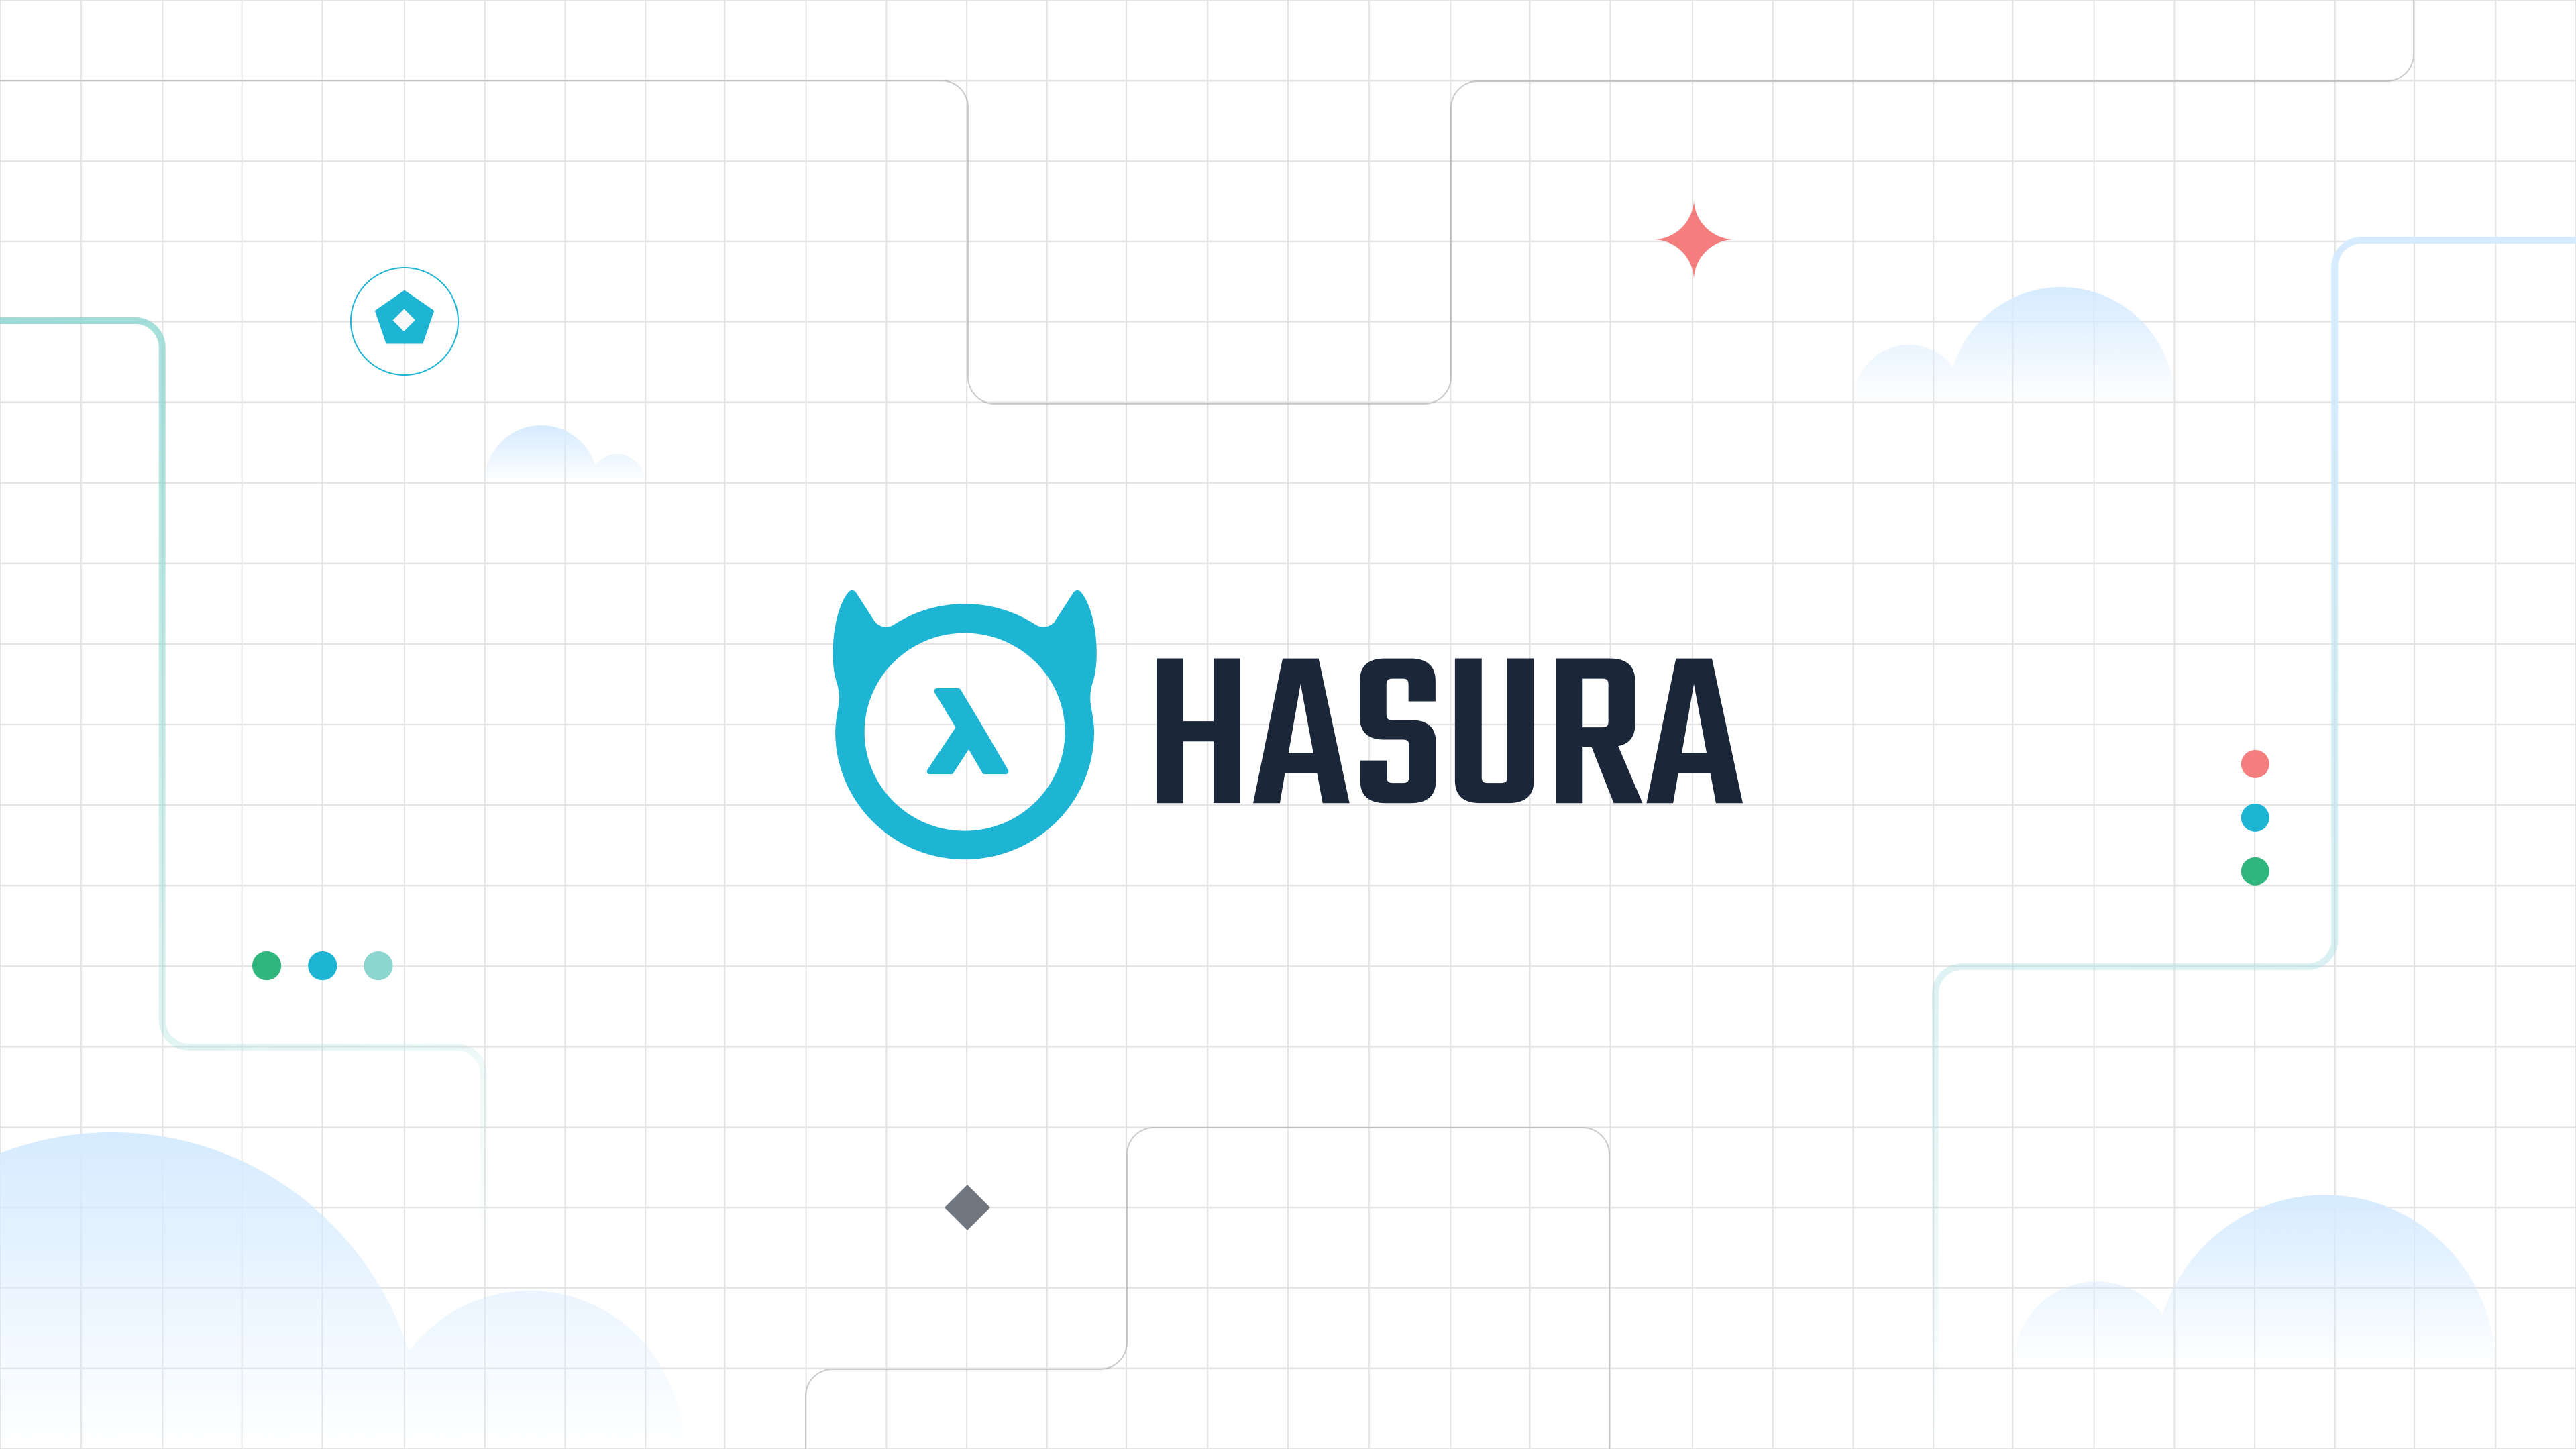 Hasura | Instant GraphQL APIs for your data | Join data across databases, GraphQL & REST services to build powerful modern applications